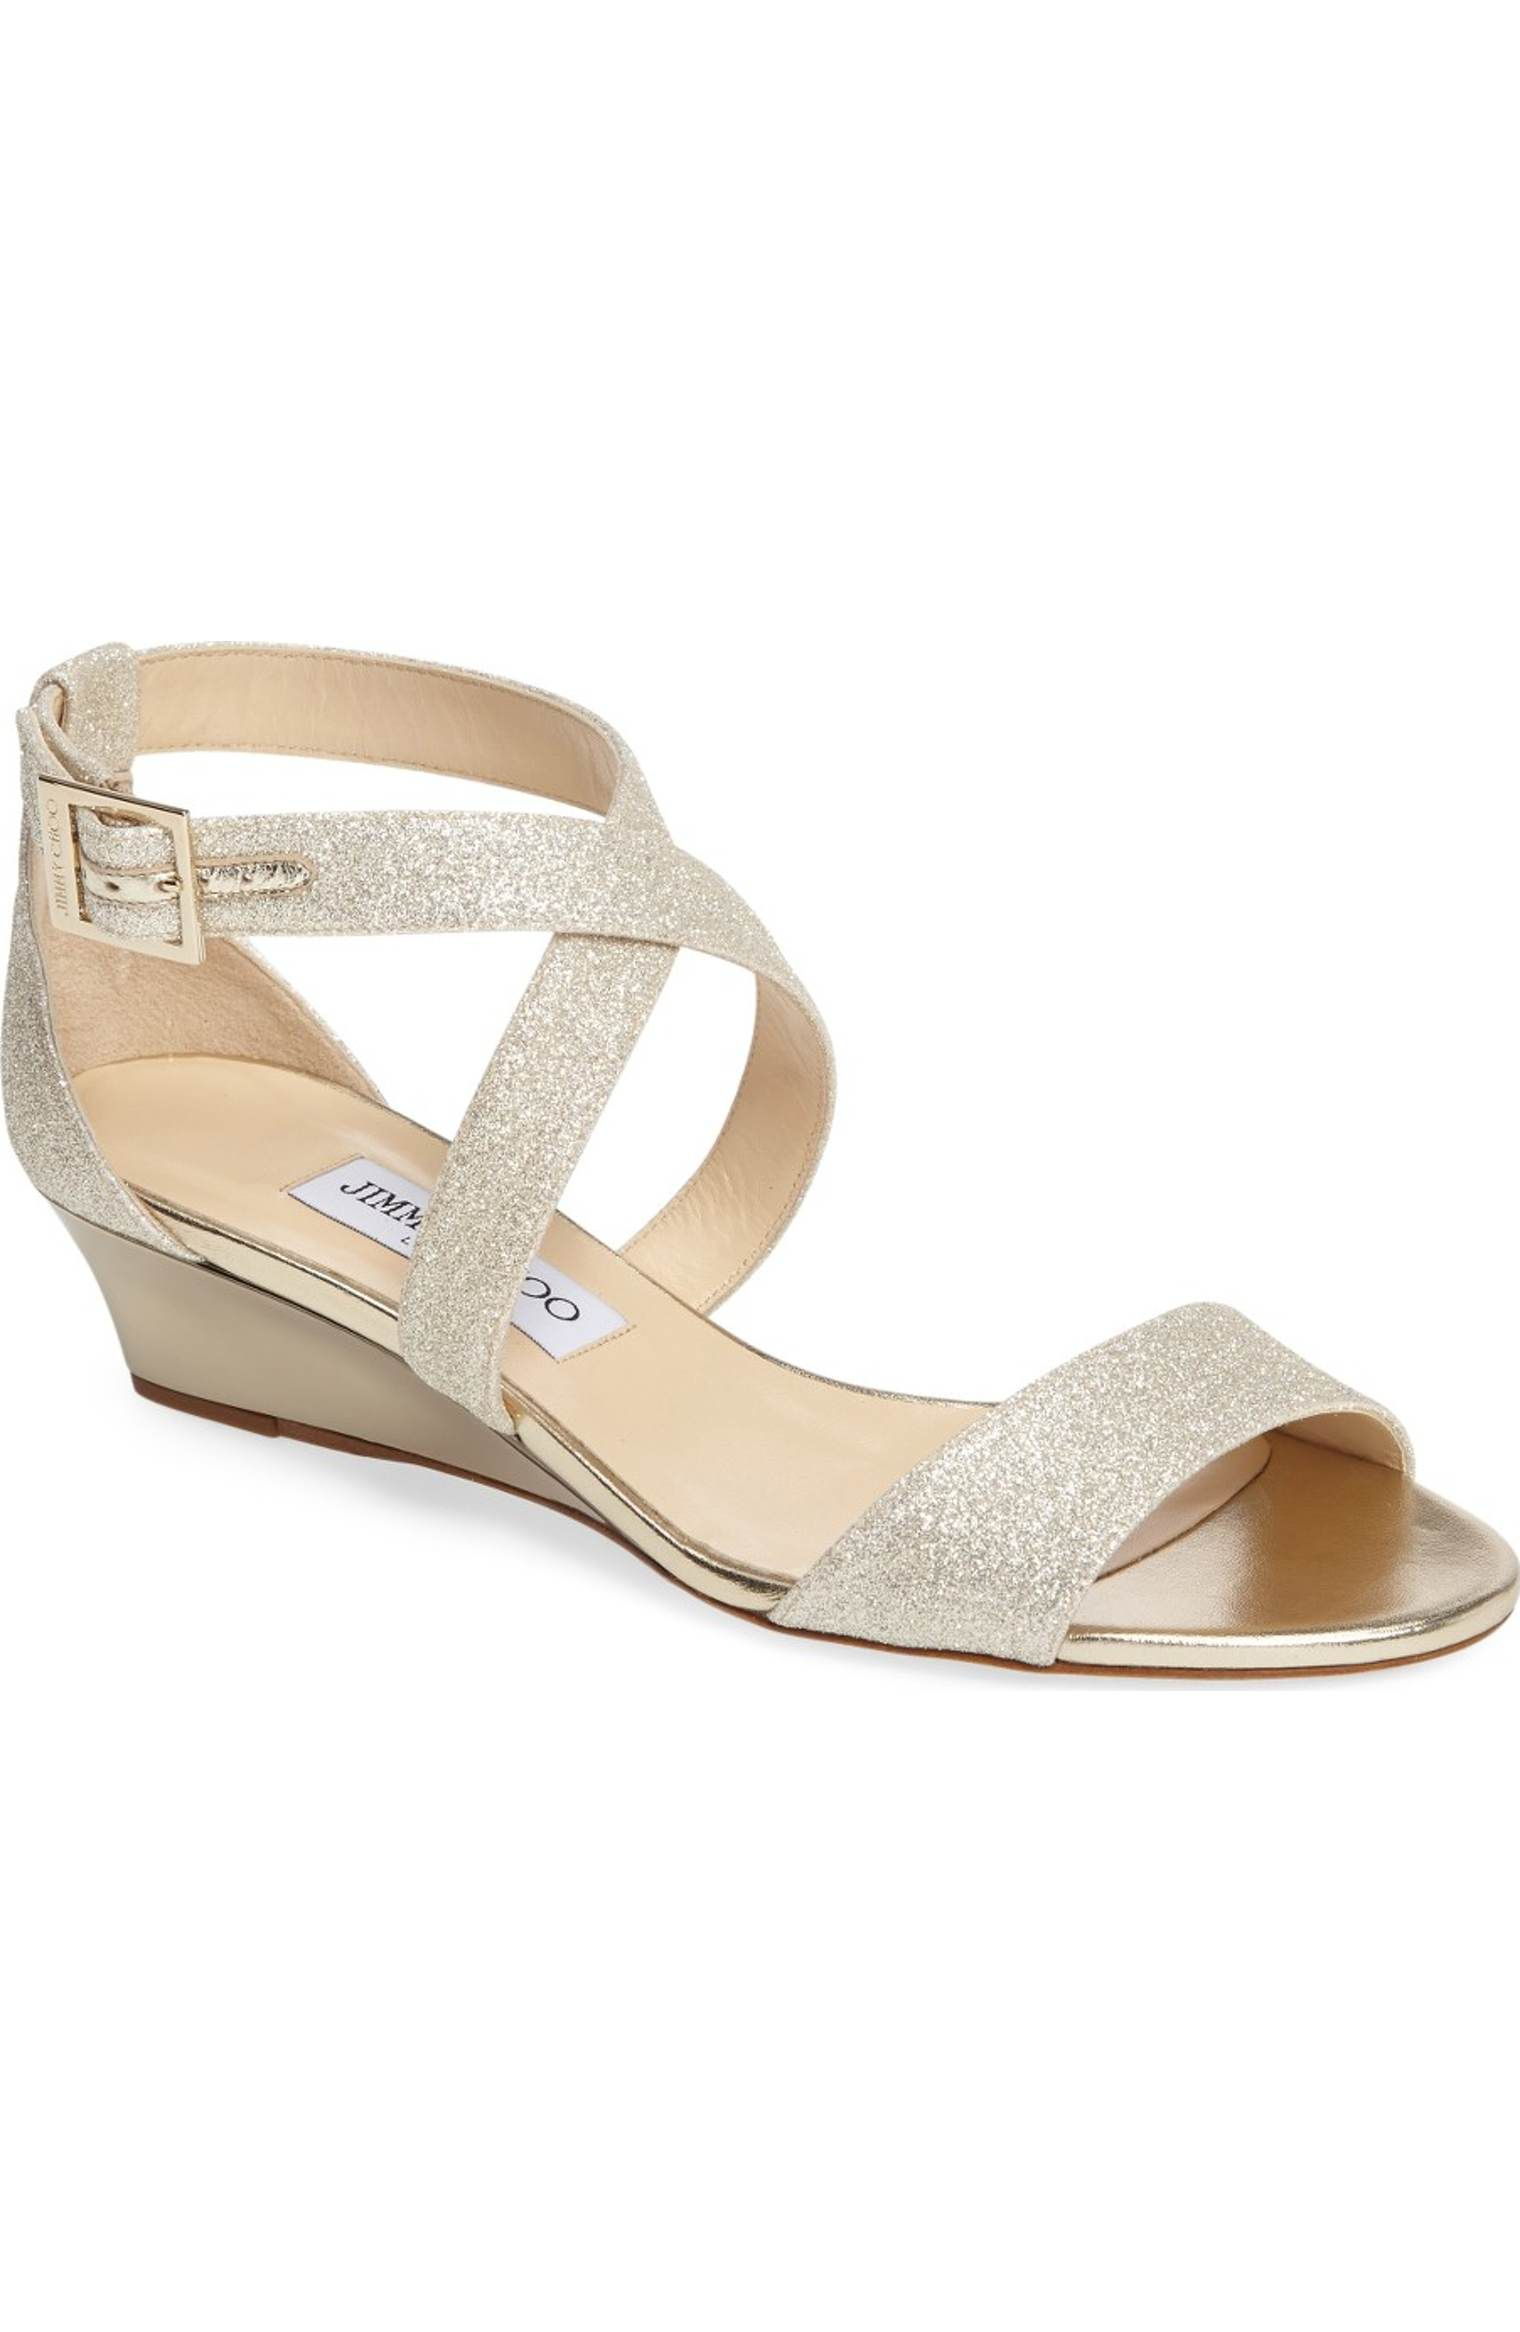 c7c2101ad715 Main Image - Jimmy Choo  Chiara  Strap Wedge Sandal (Women)